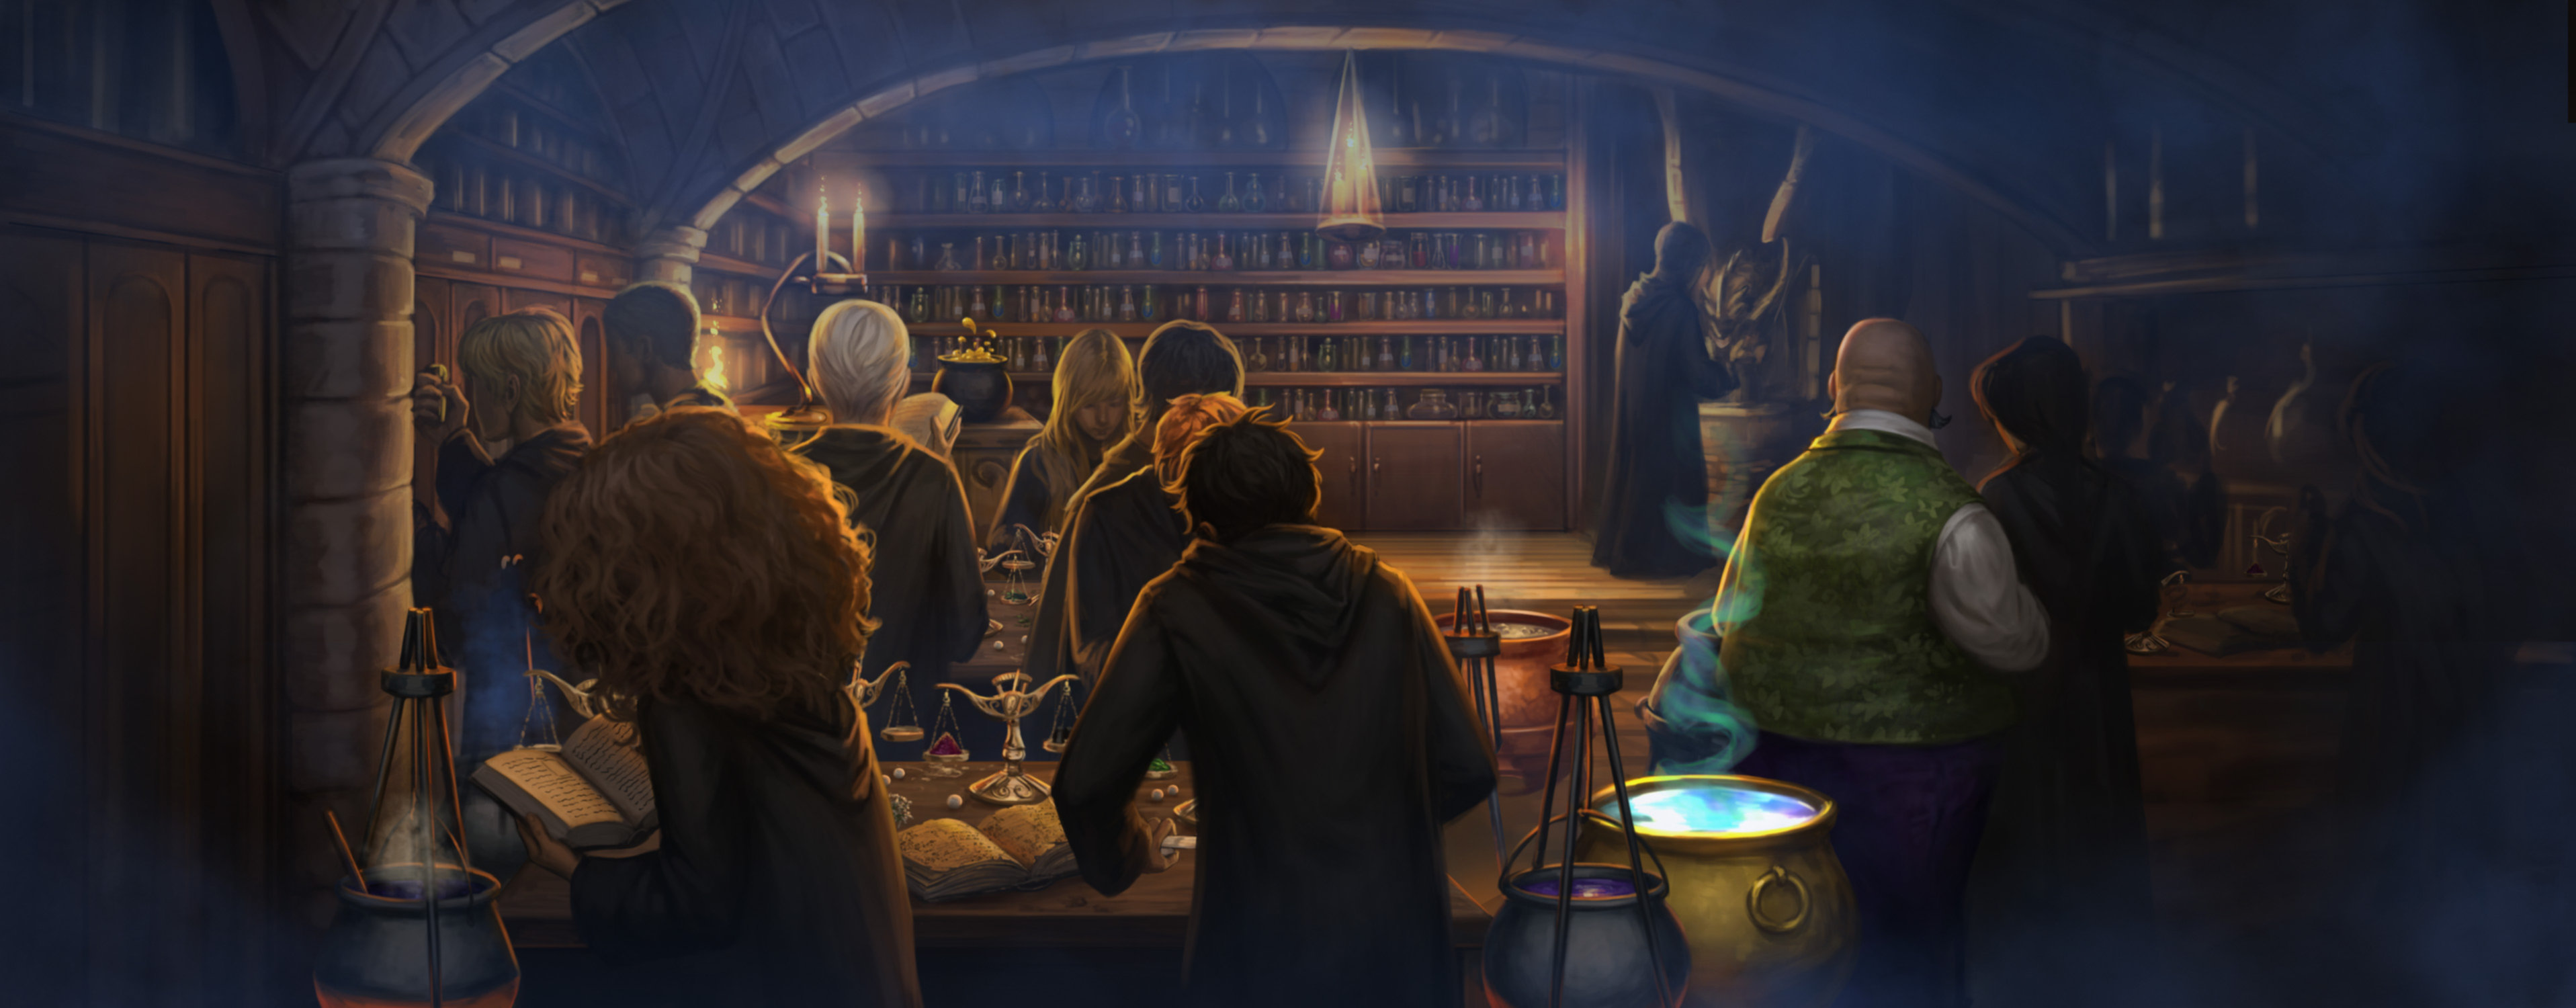 Professor Slughorn teaches potions to Harry's class